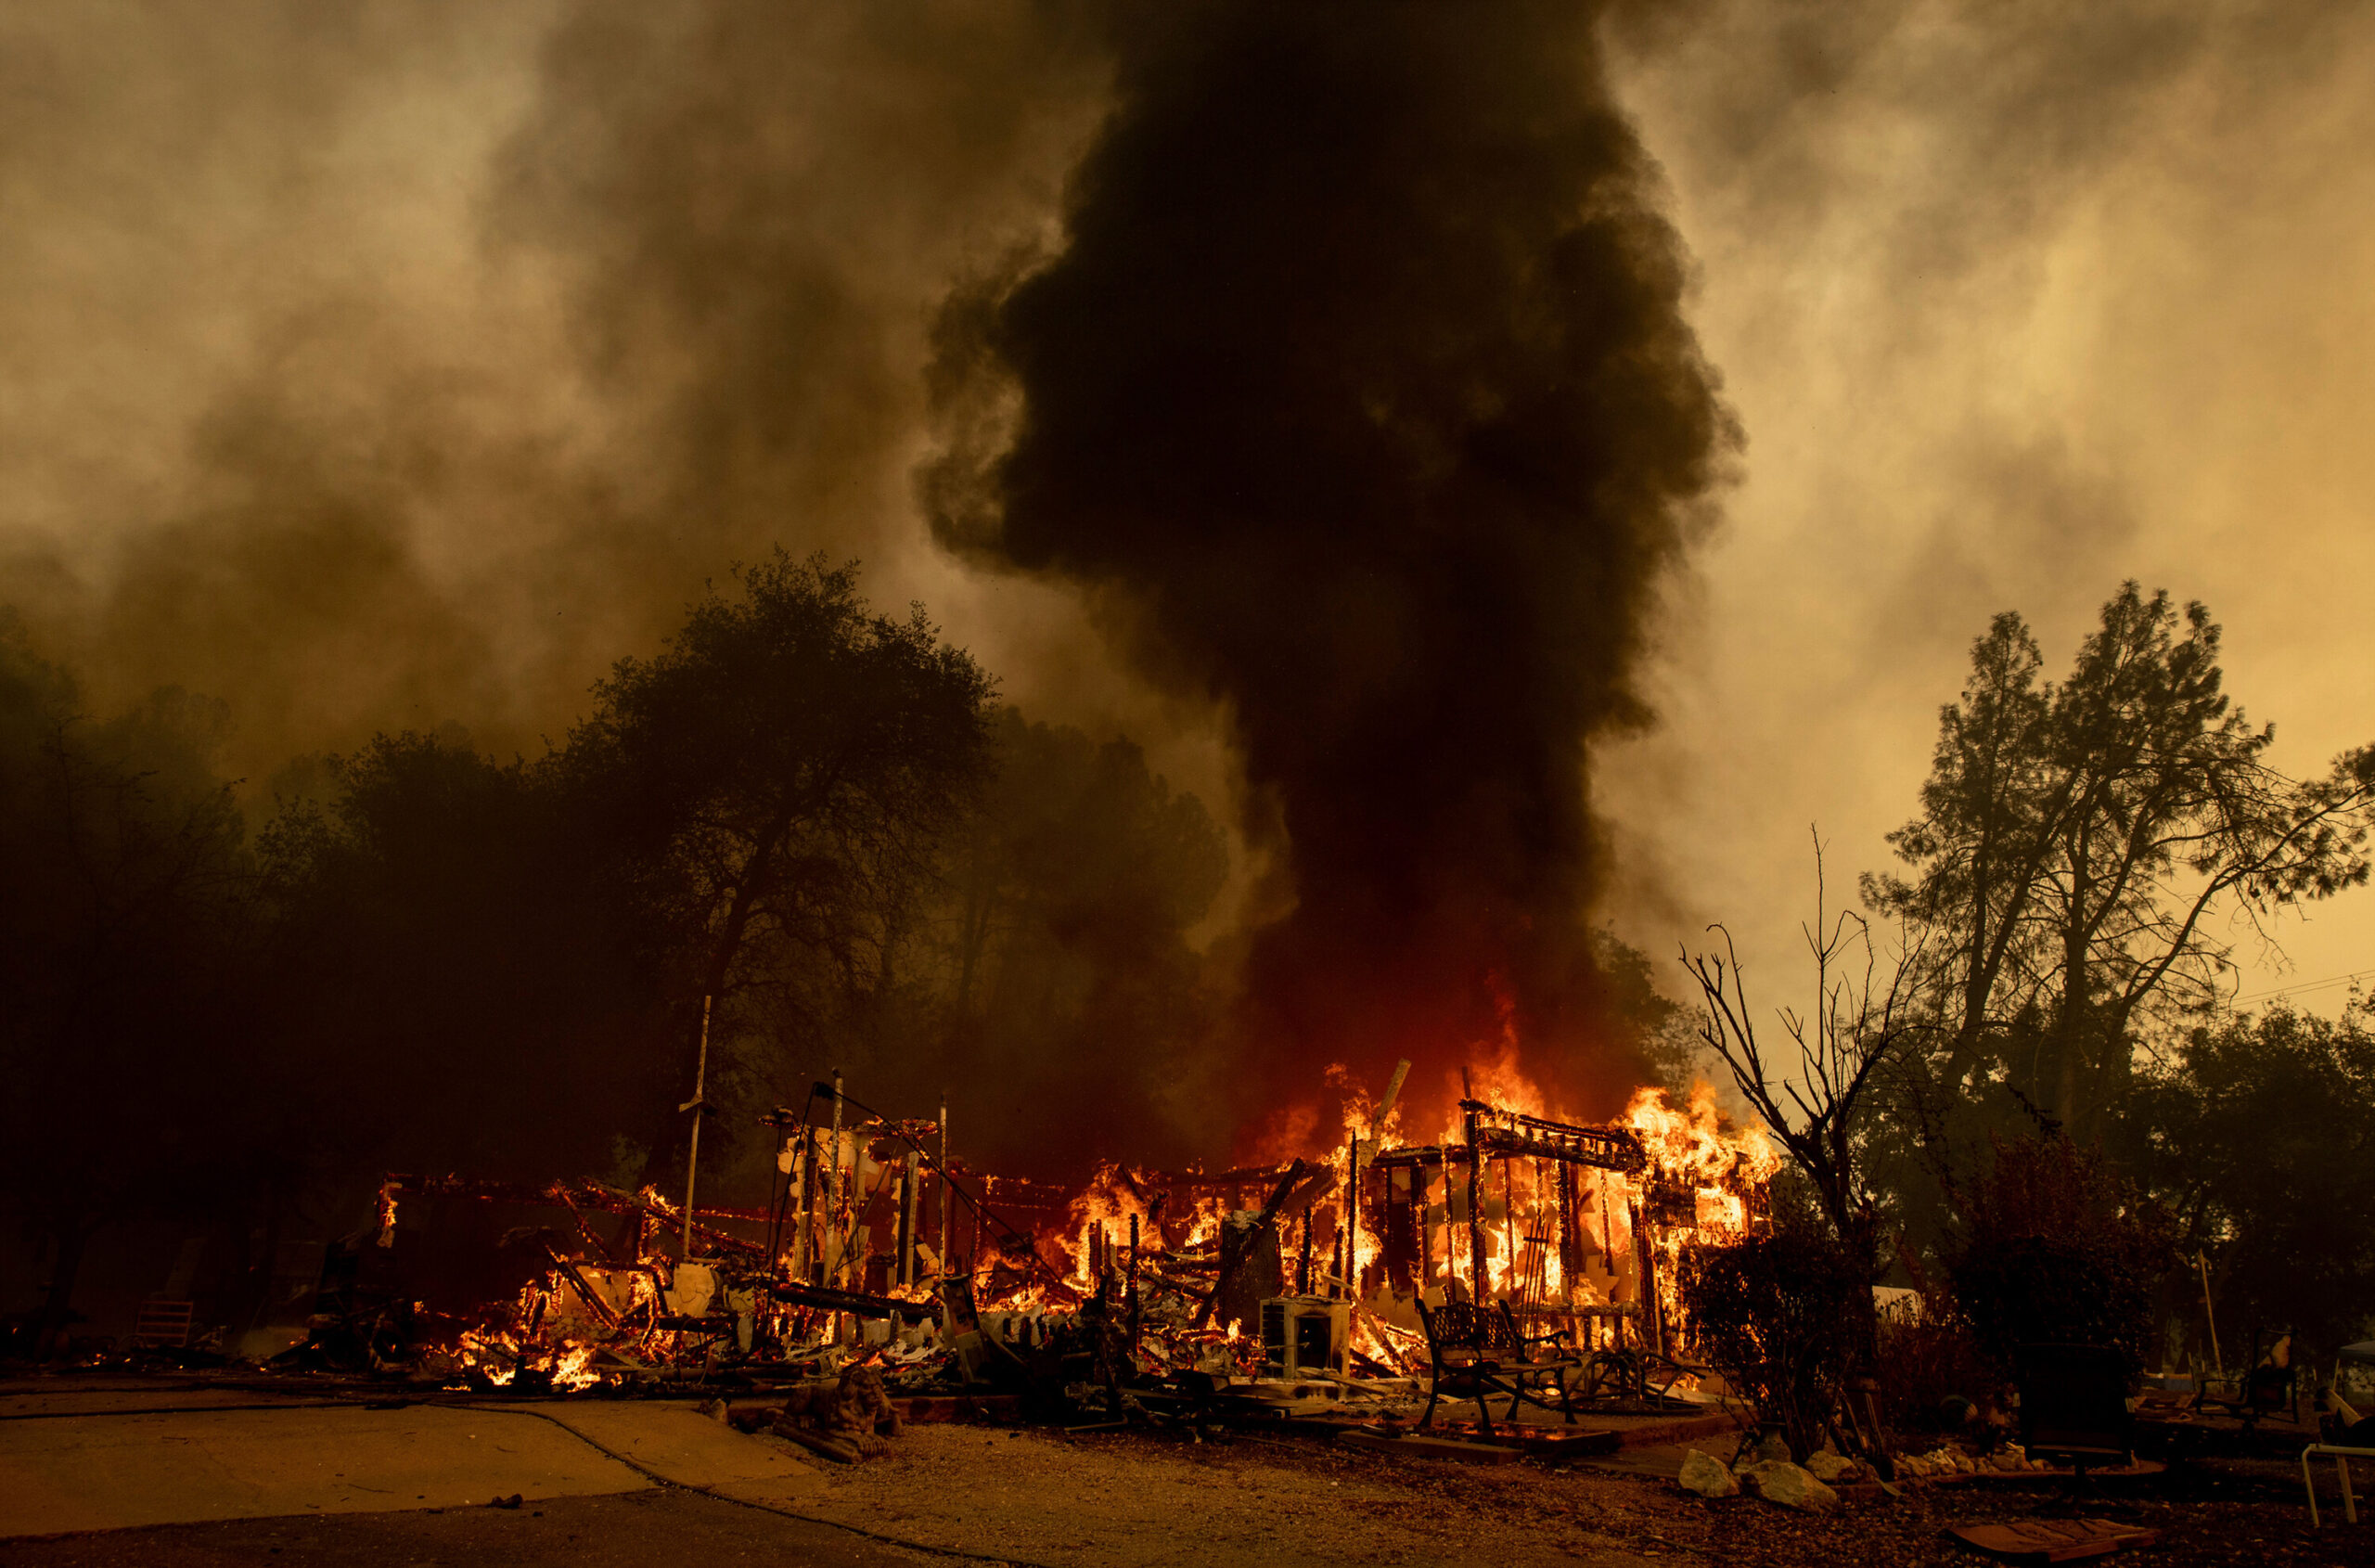 <i>Ethan Swope/AP</i><br/>Flames consume a house as the Fawn Fire burns north of Redding on September 23.